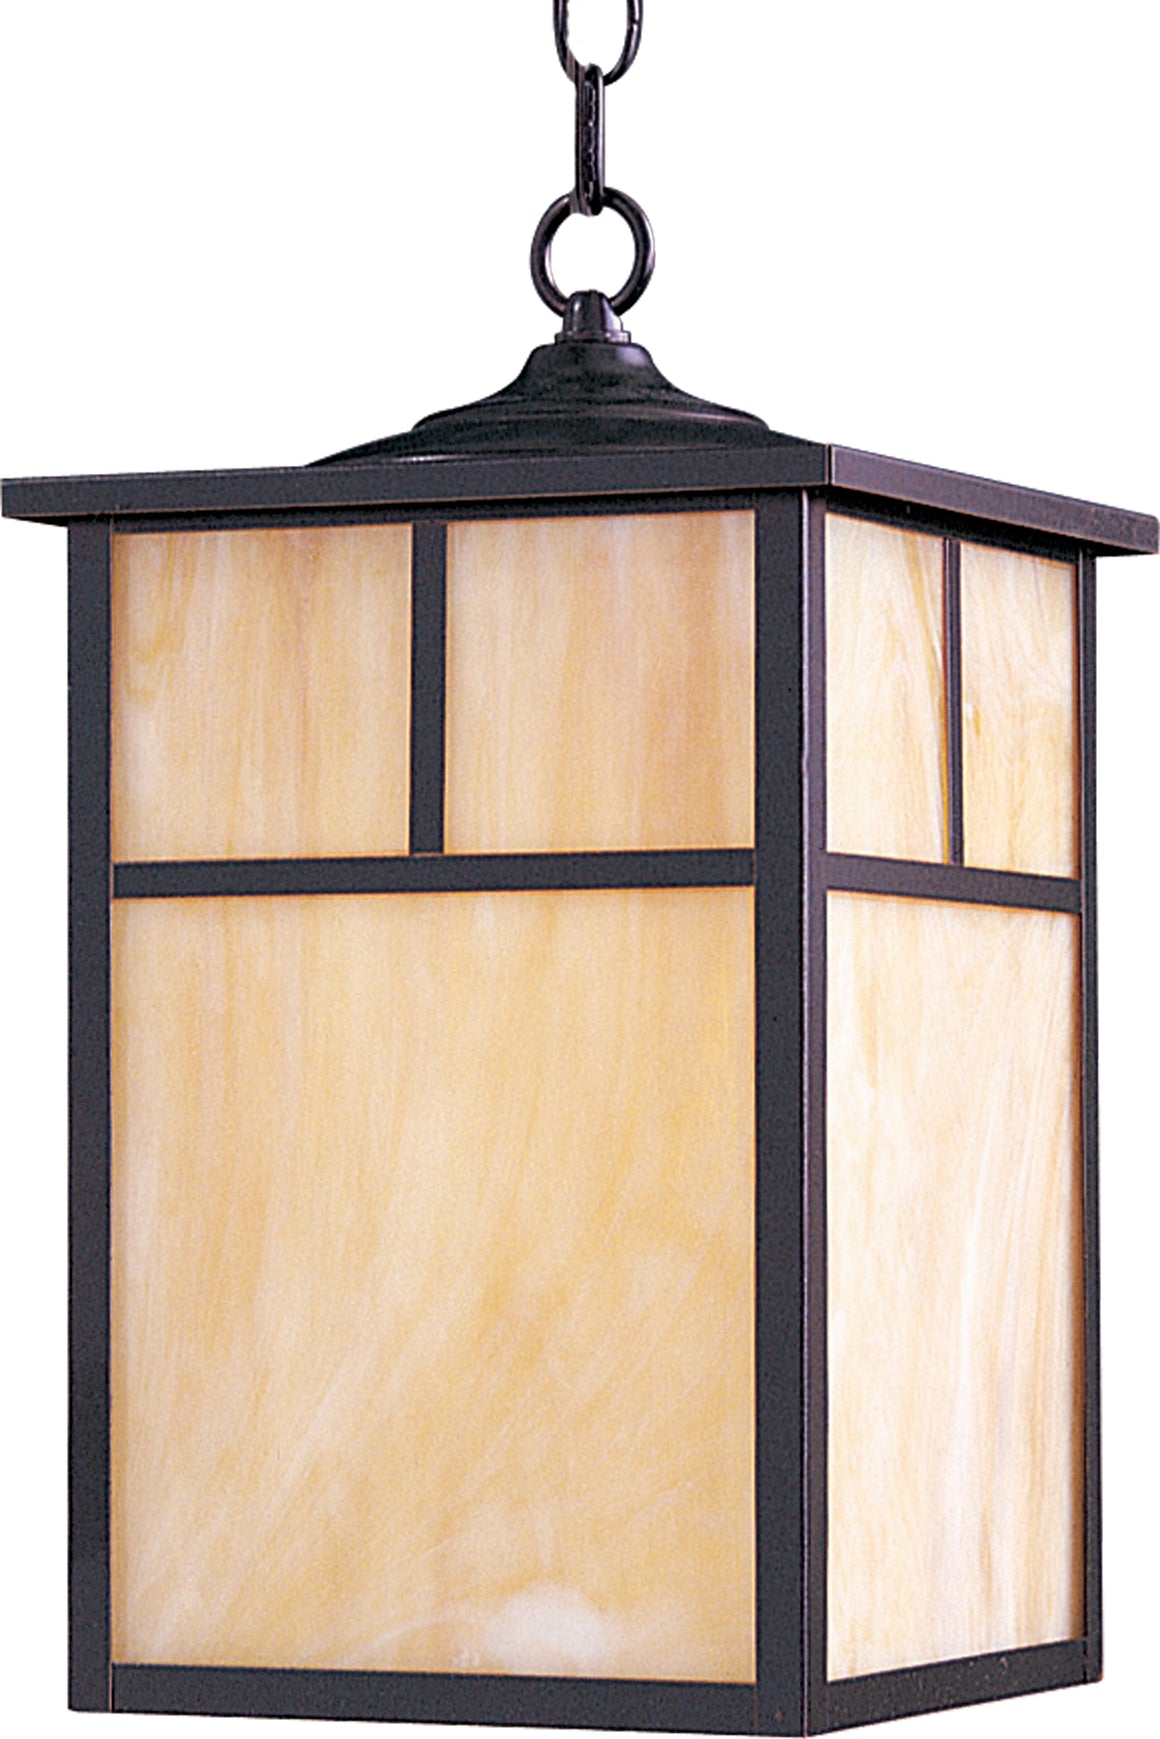 Coldwater 1-Light Outdoor Hanging Lantern